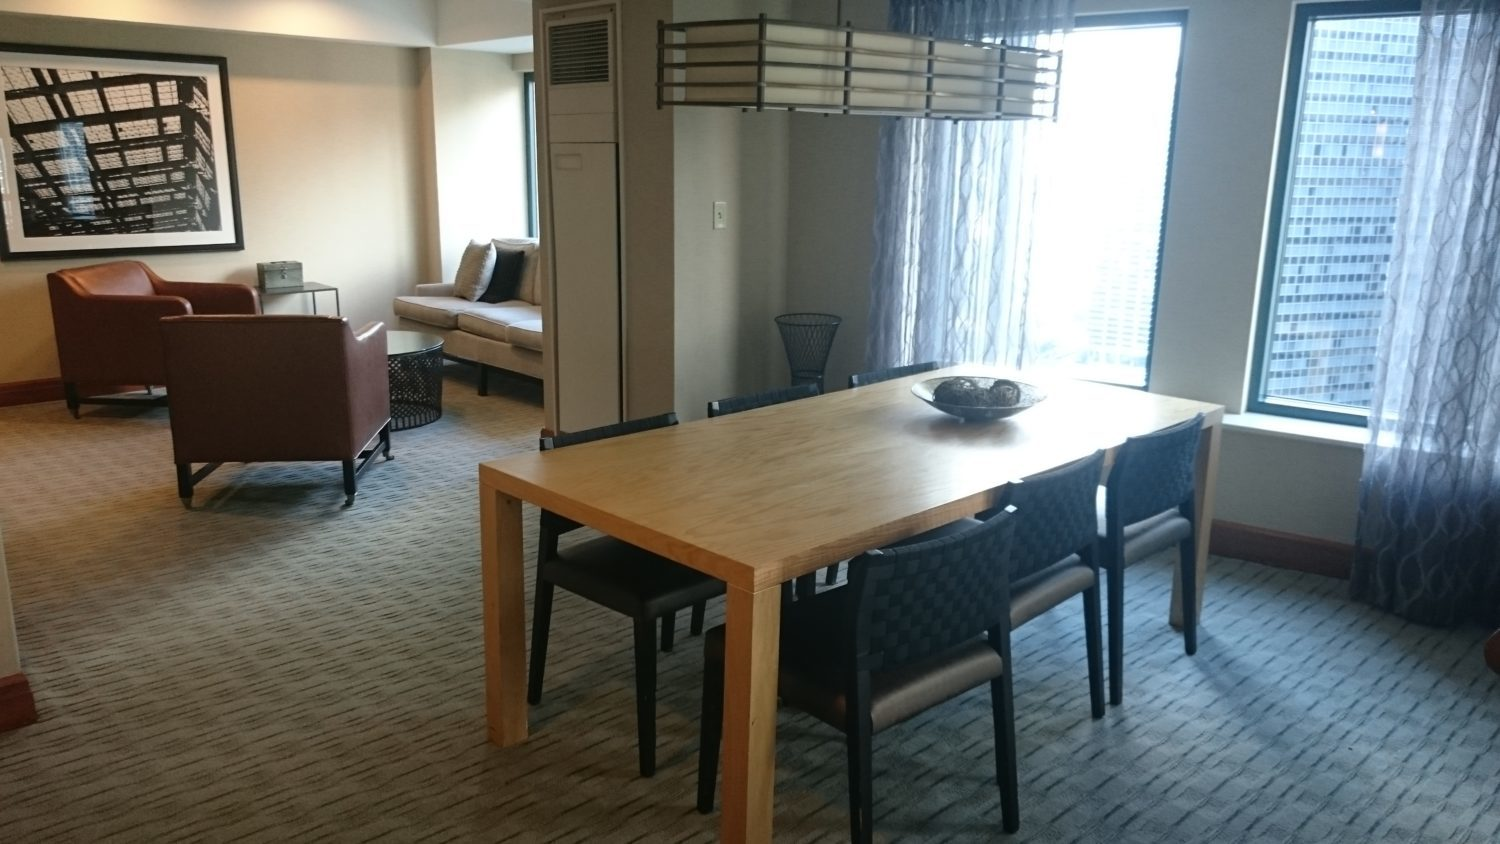 Sheraton Grand Chicago Club Lounge Interior